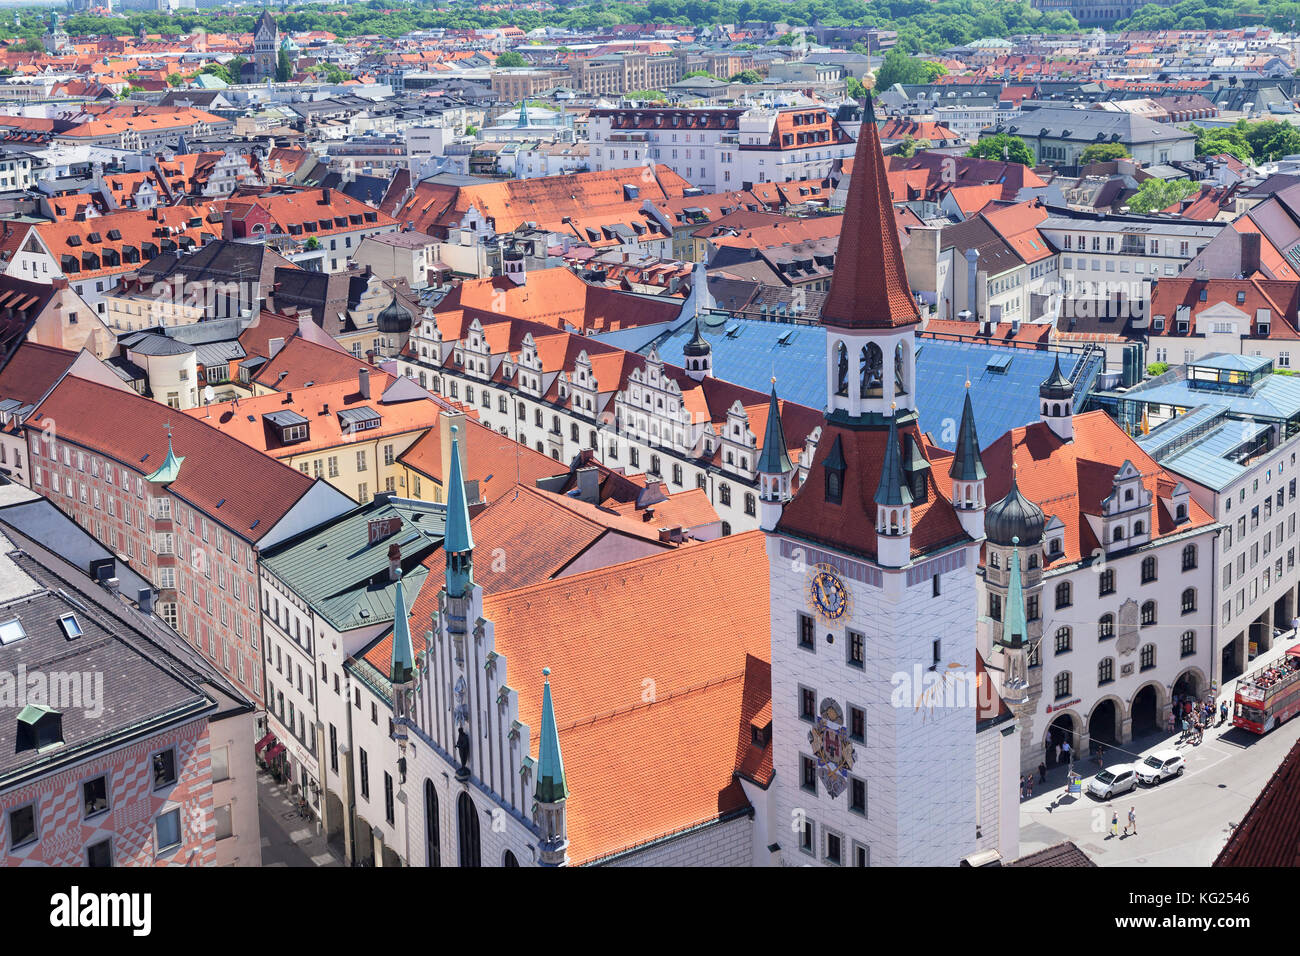 Old town hall (Altes Rathaus) at Marienplatz Square, Munich, Bavaria, Germany, Europe - Stock Image